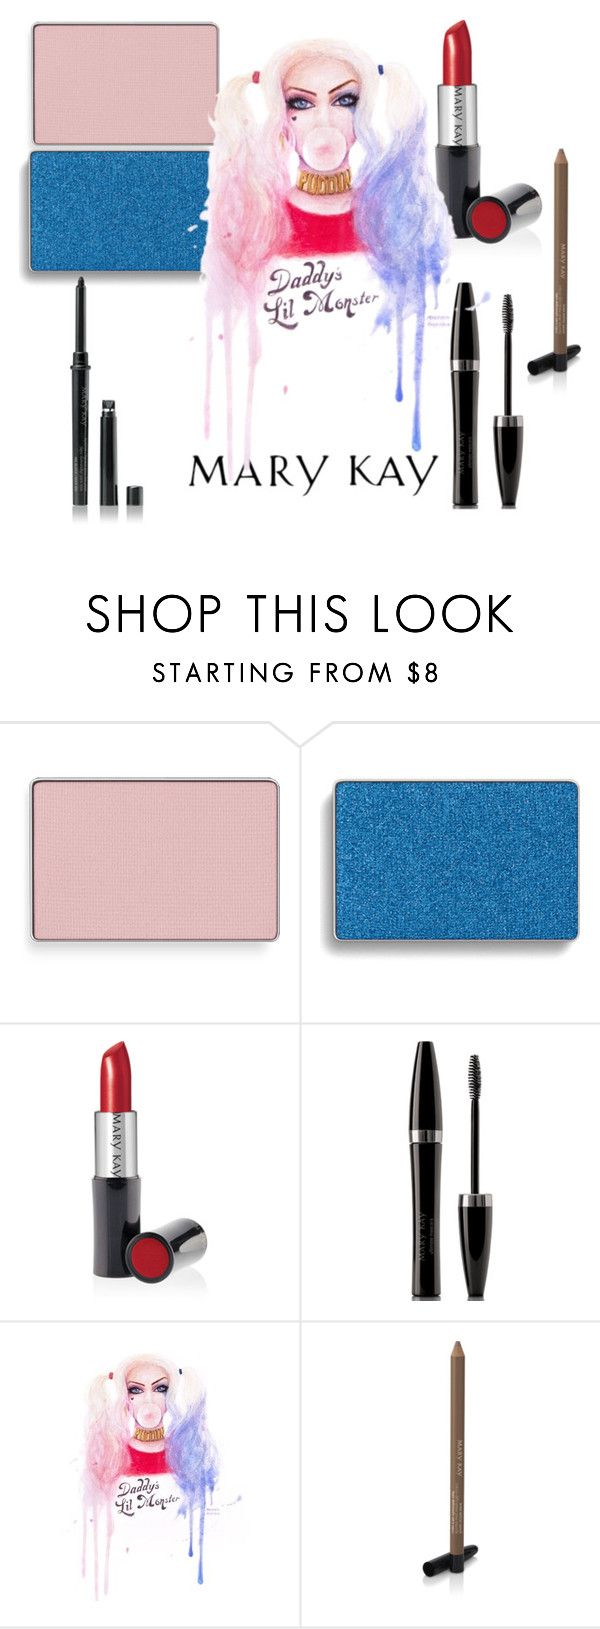 """""""Harley Quinn Mary Kay color"""" by taylormarie213 ❤ liked on Polyvore featuring beauty, Mary Kay, Marykay, cosplay, harleyquinn and SuicideSquad"""